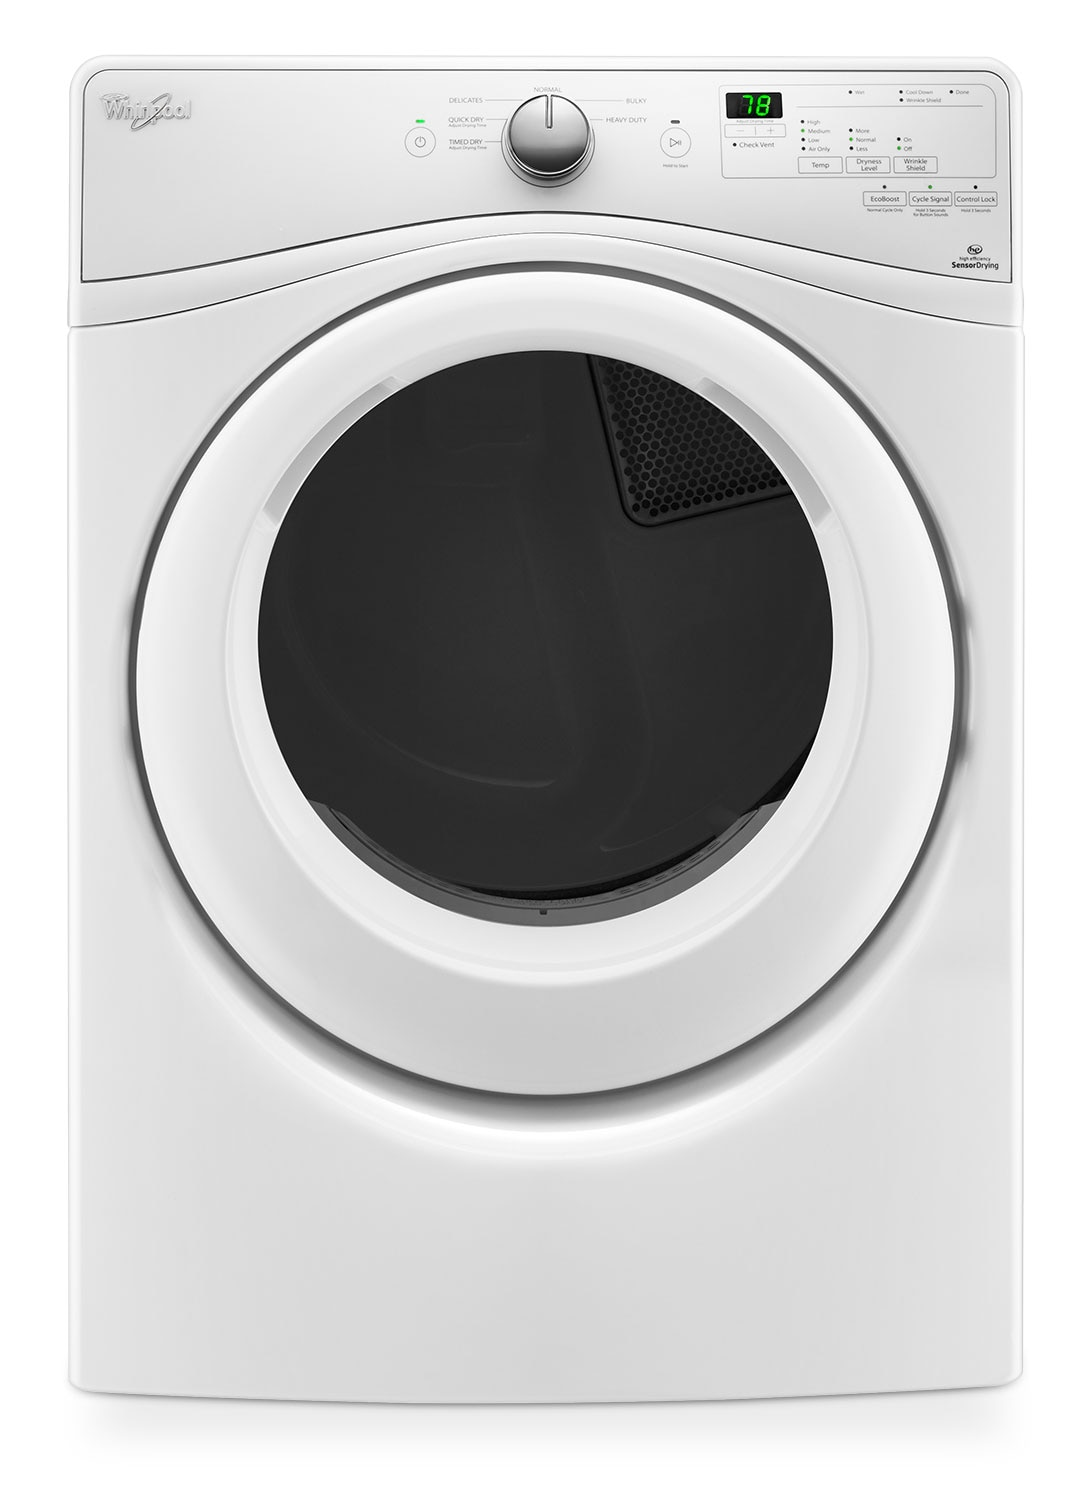 Washers and Dryers - Whirlpool 7.4 Cu. Ft. Gas Dryer – WGD75HEFW